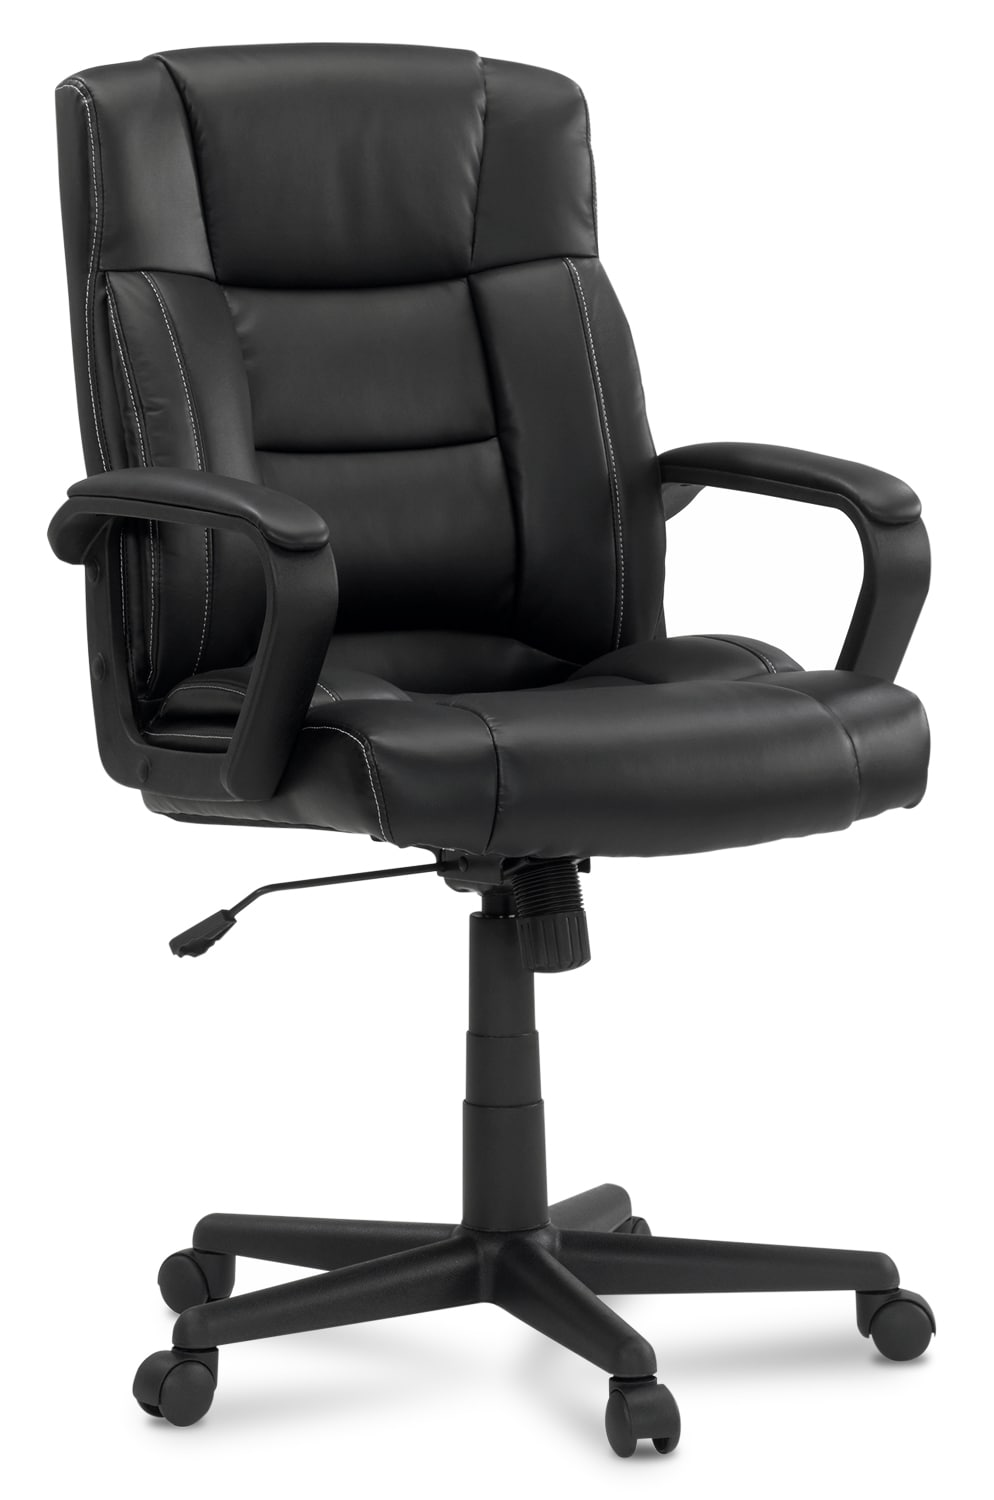 Home Office Furniture - Boston Office Chair